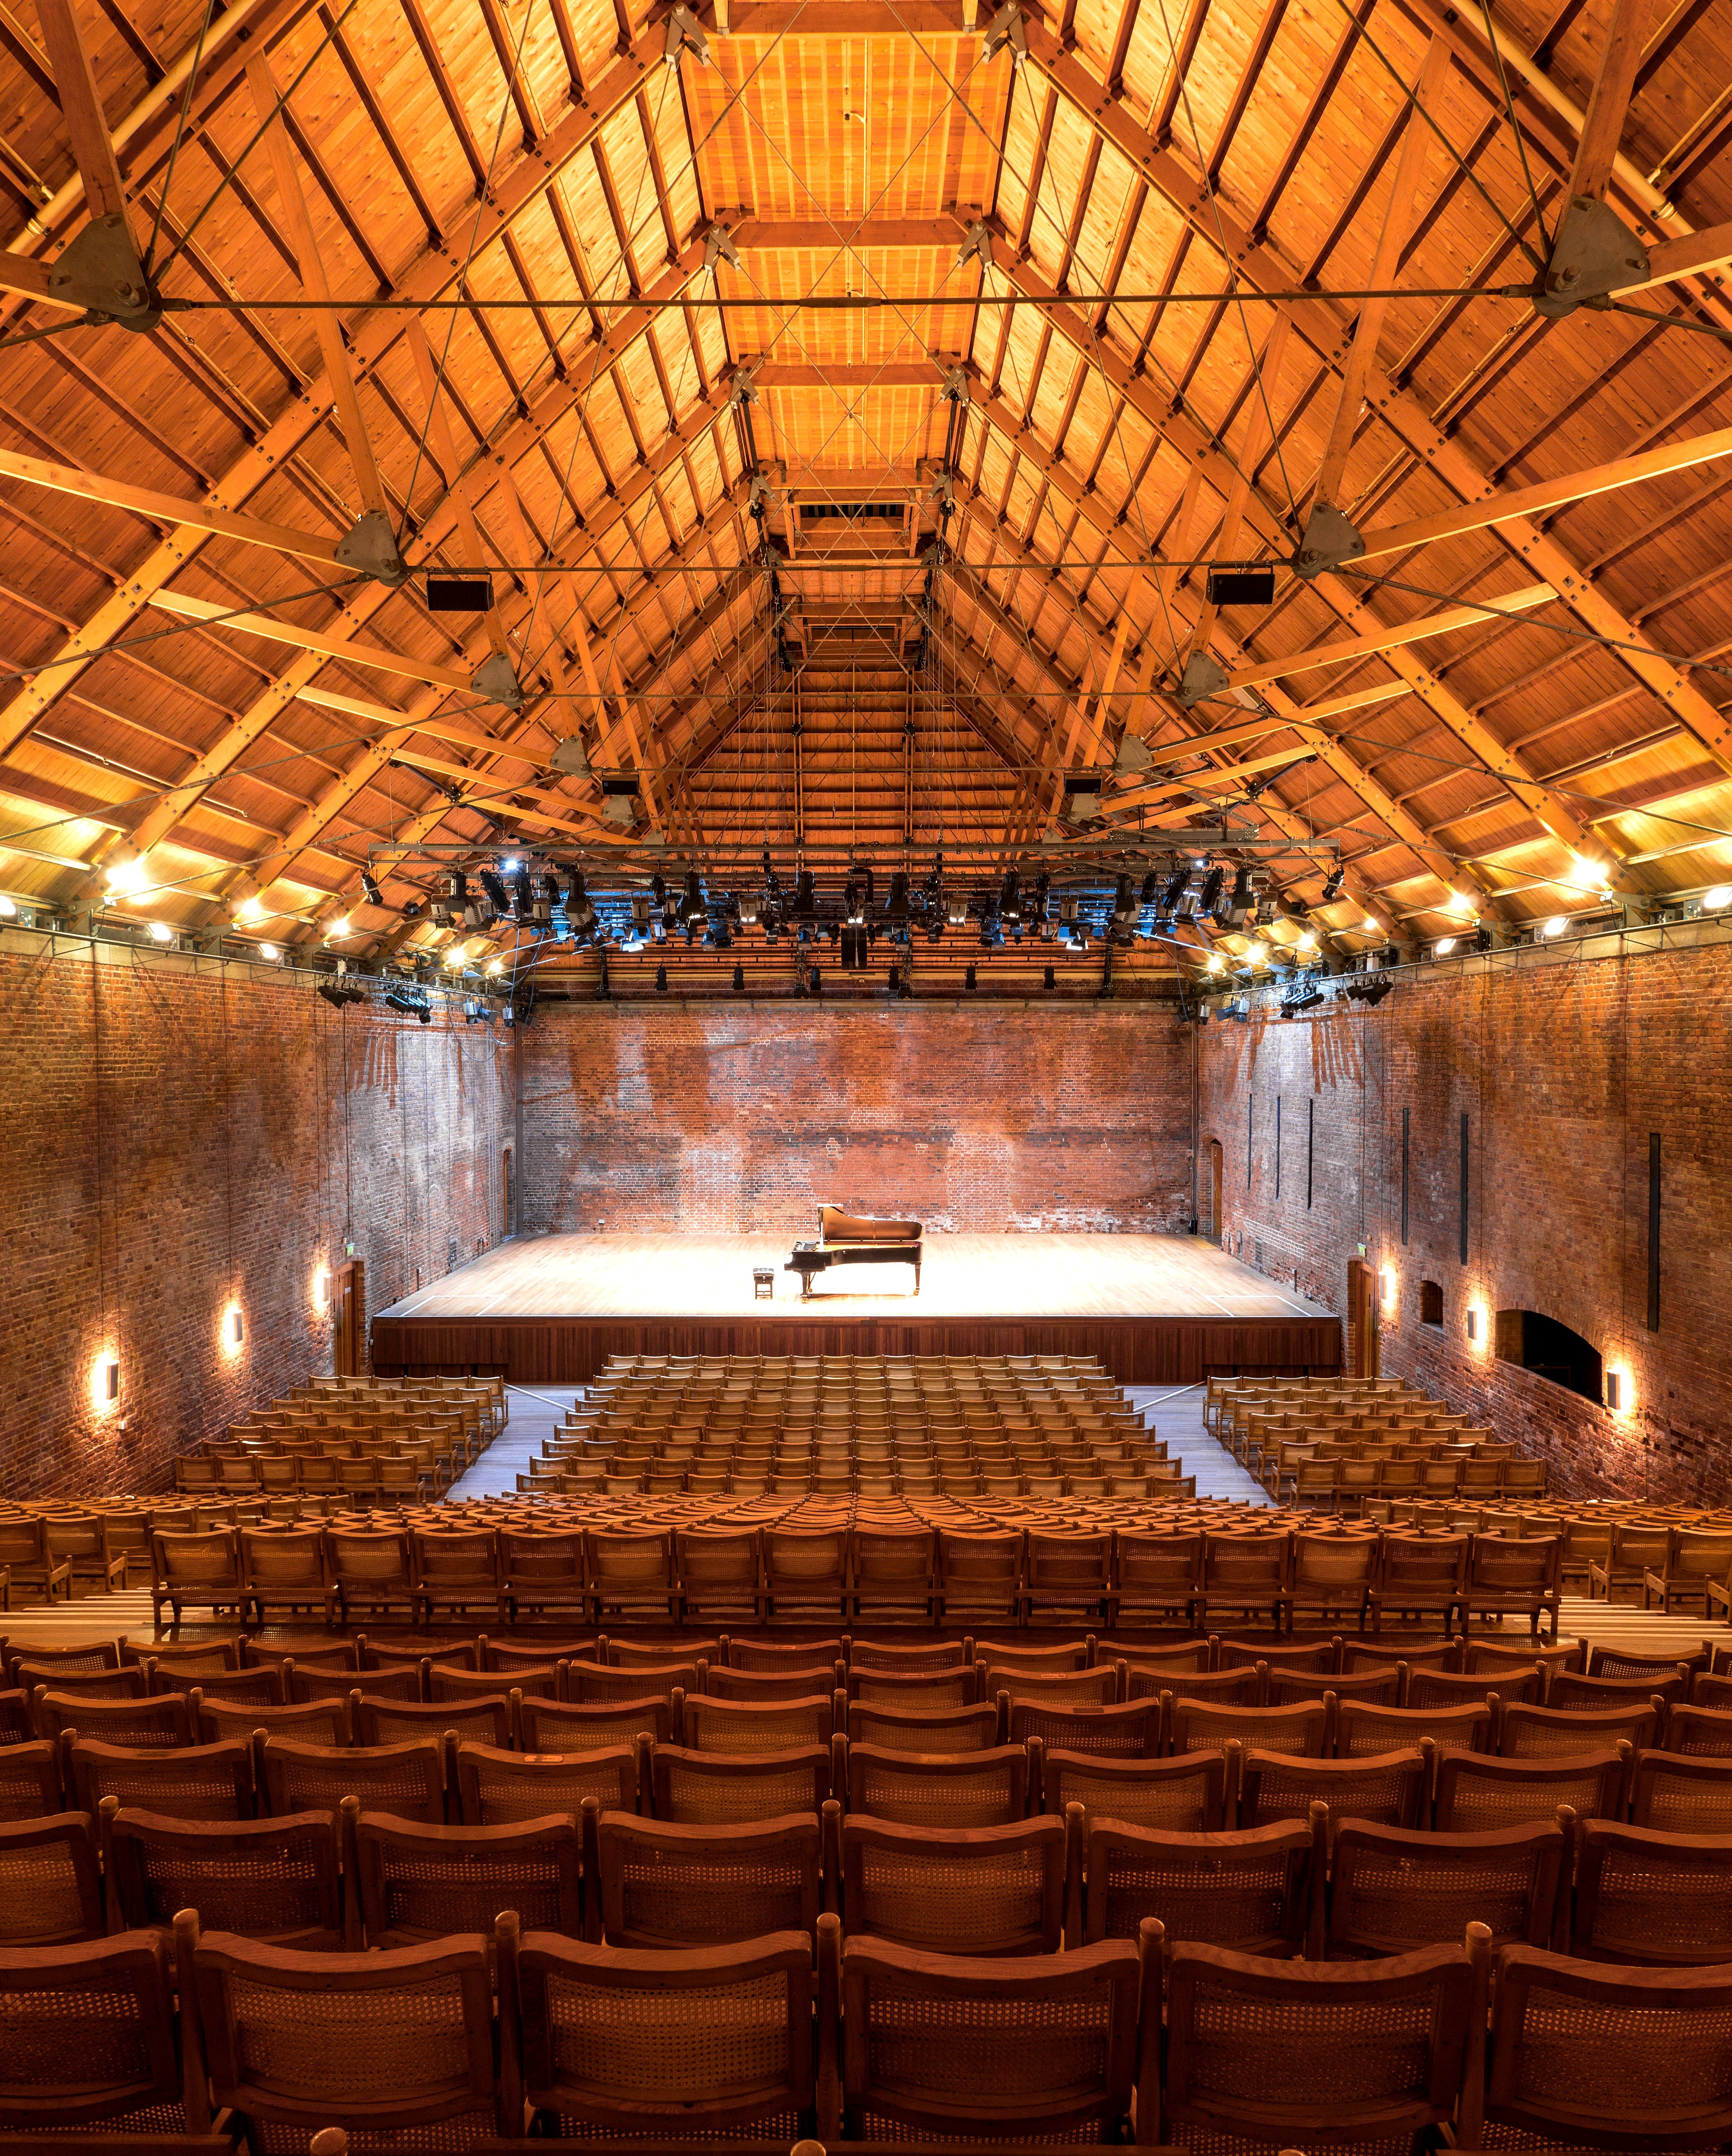 Snape Maltings Concert Hall interior